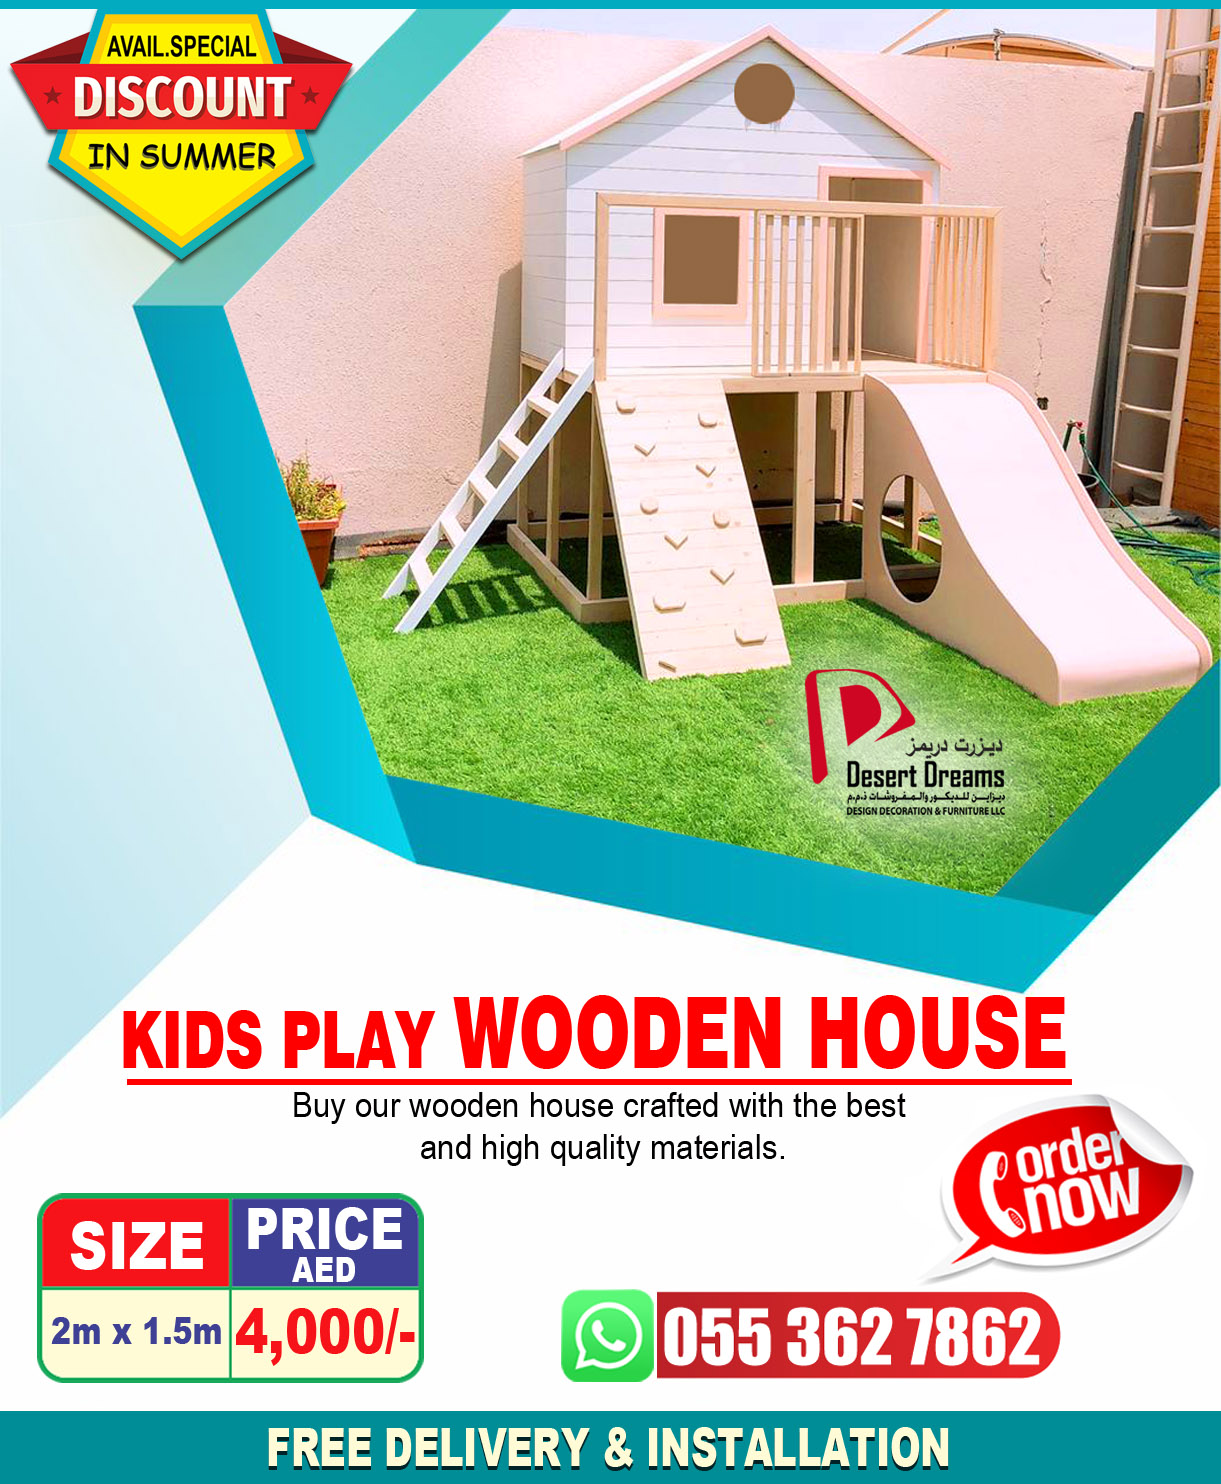 Kids Play Wooden House Suppliers n UAE-2.jpg